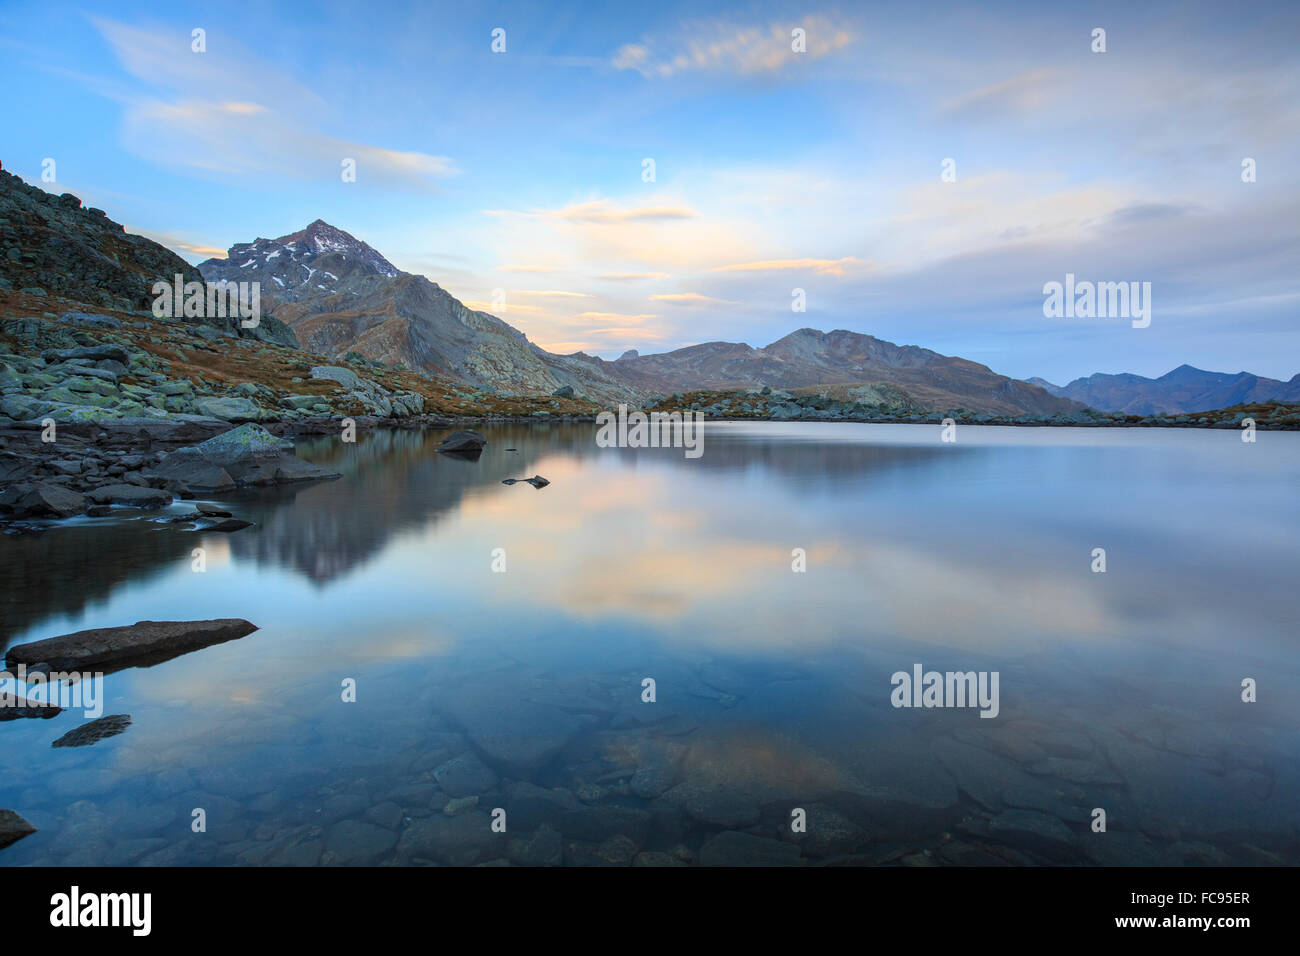 Peak Tambo reflected in Lake Bergsee at dawn, Chiavenna Valley, Spluga Valley, Switzerland, Europe - Stock Image